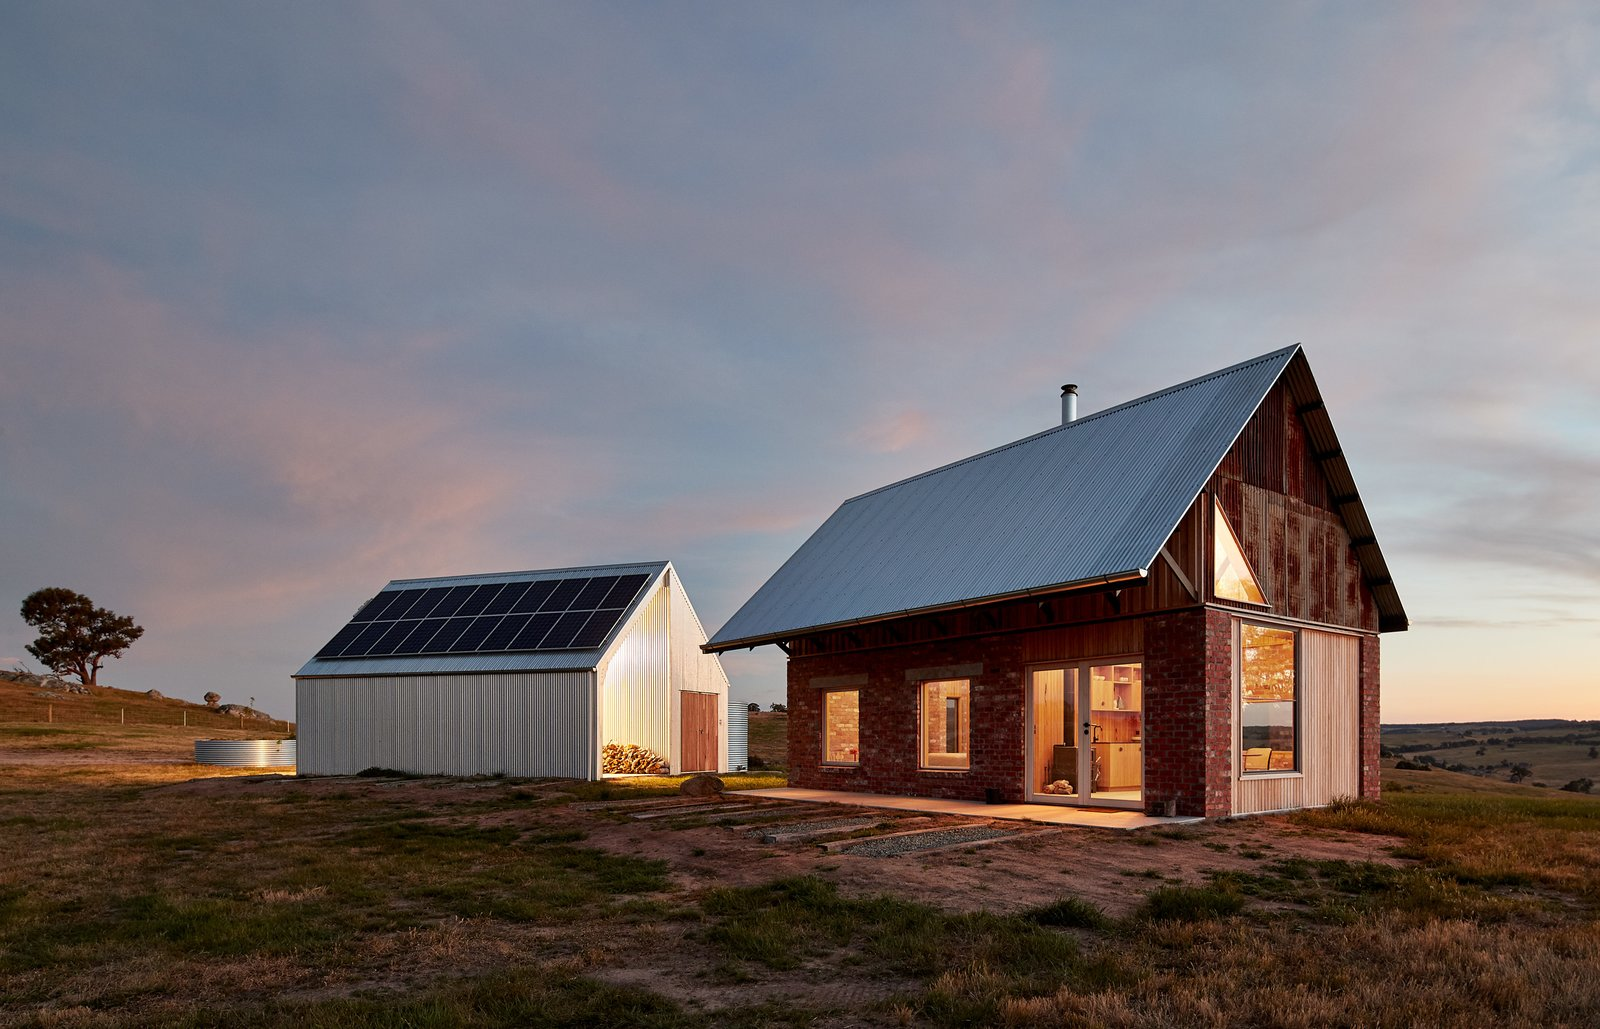 The 500-square-foot cabin and adjacent shed are 100 percent off-grid, with water, sewer, and electrical systems in place to support these buildings and any future development.